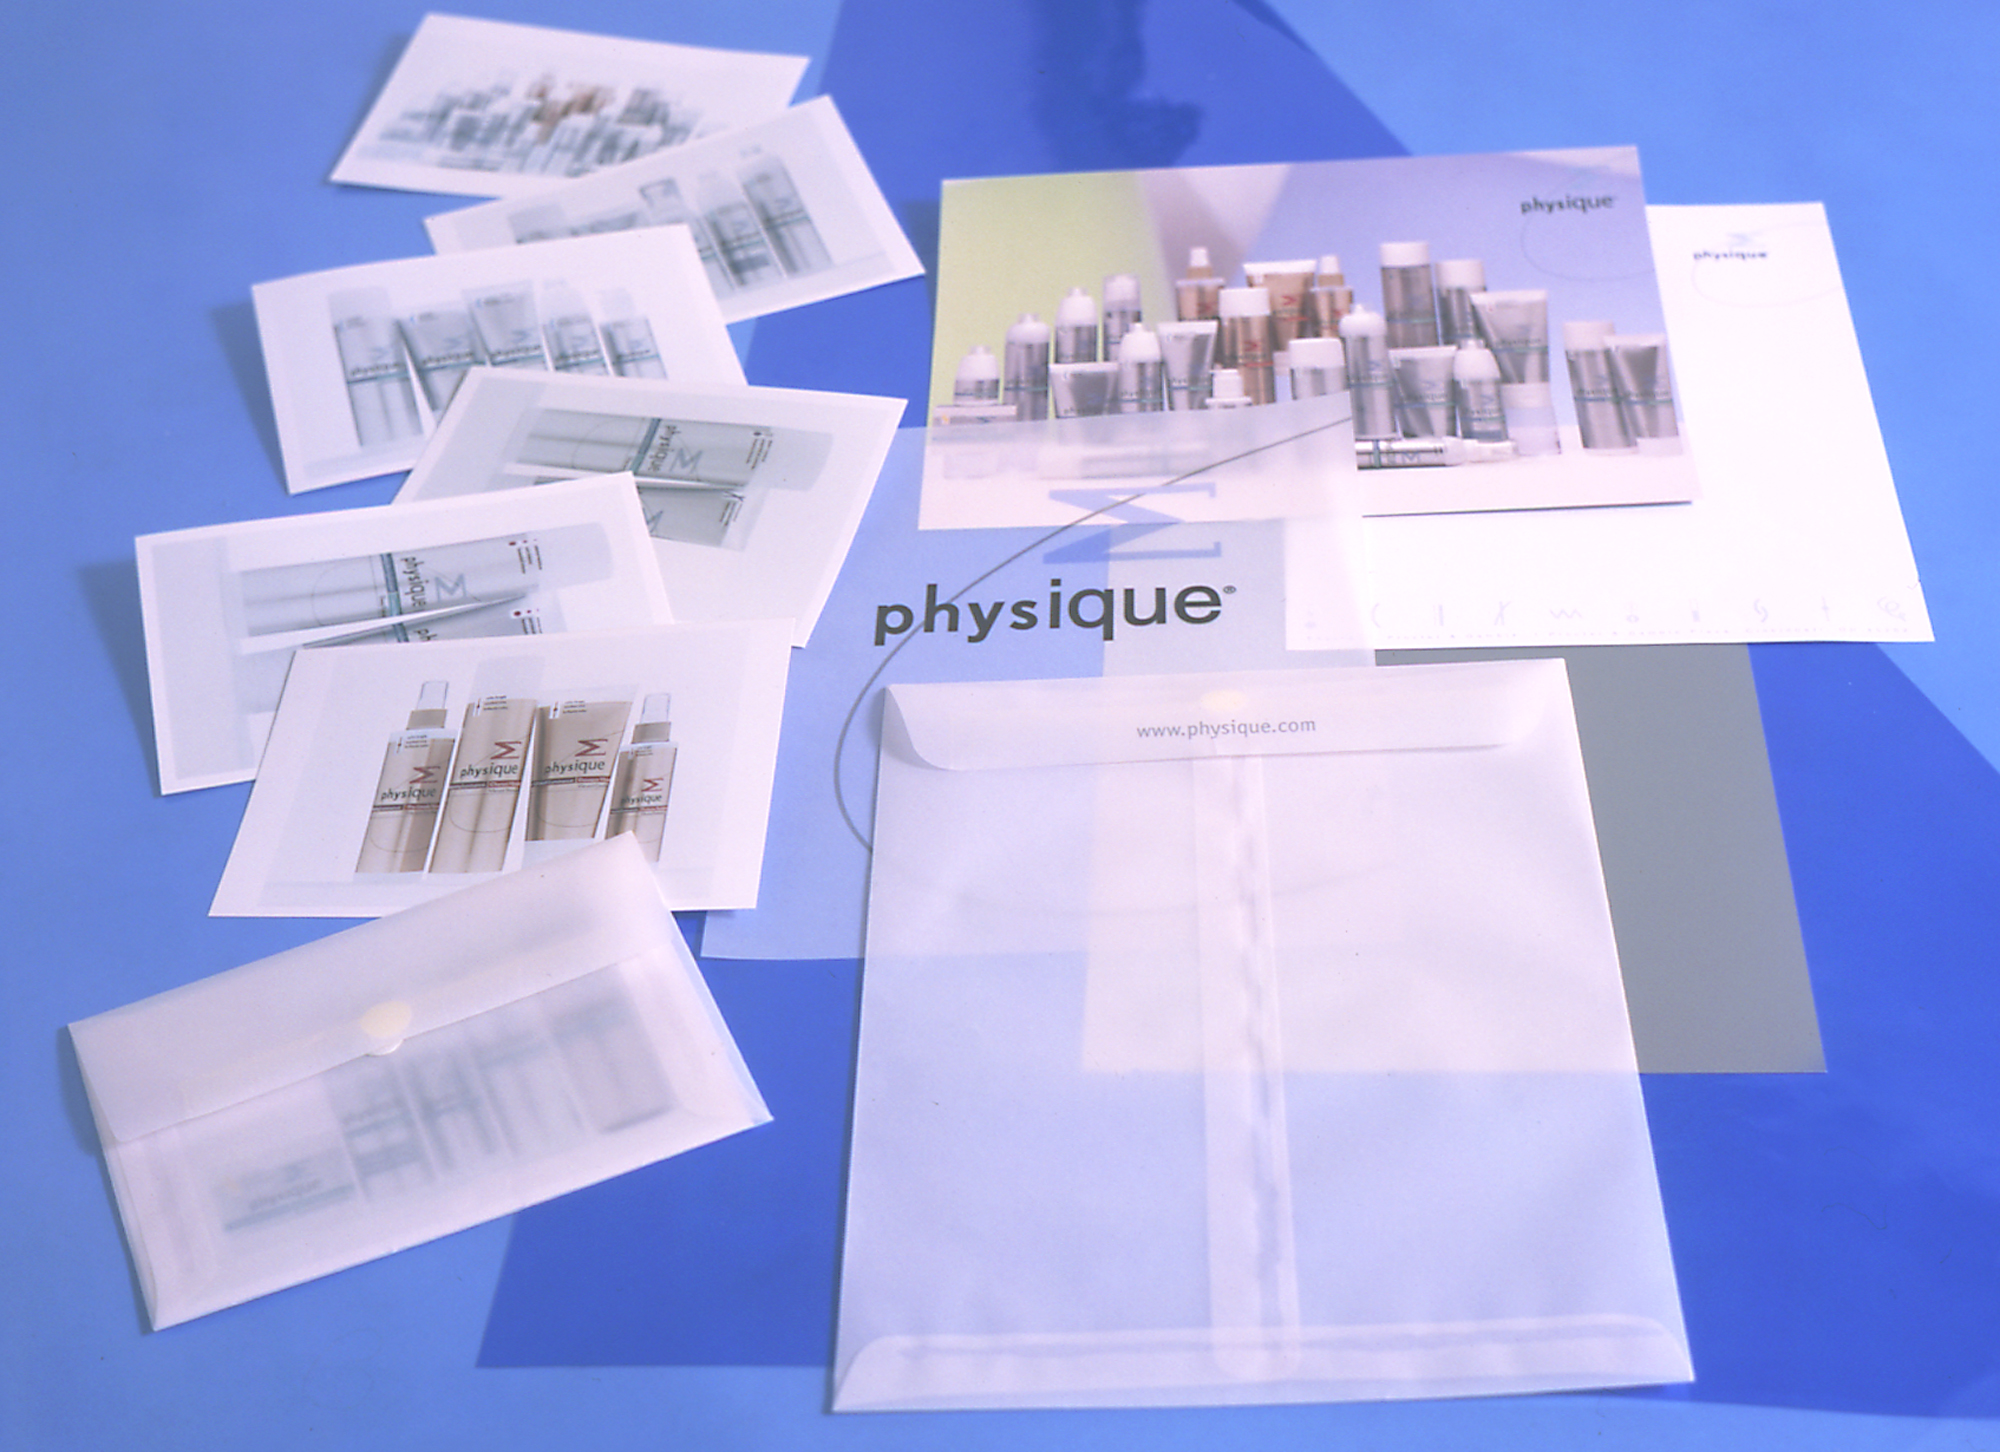 physique-group-presskit-2000.jpg